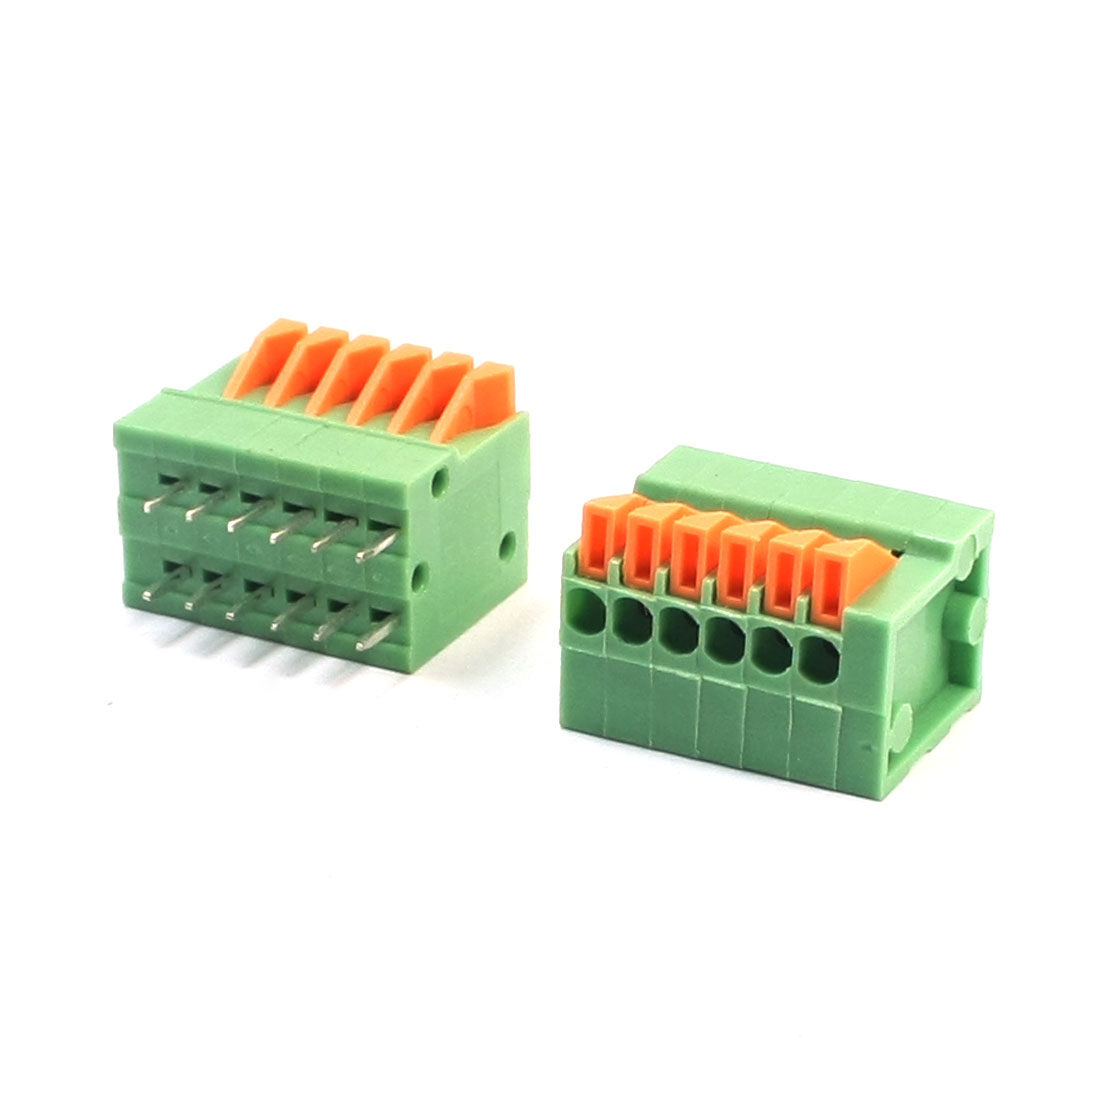 2Pcs KF141V 2.54mm Pitch Pluggable Type 12-Pole DIP PCB Mounting Screwless Terminal Barrier Block Connector Green 150V 2A